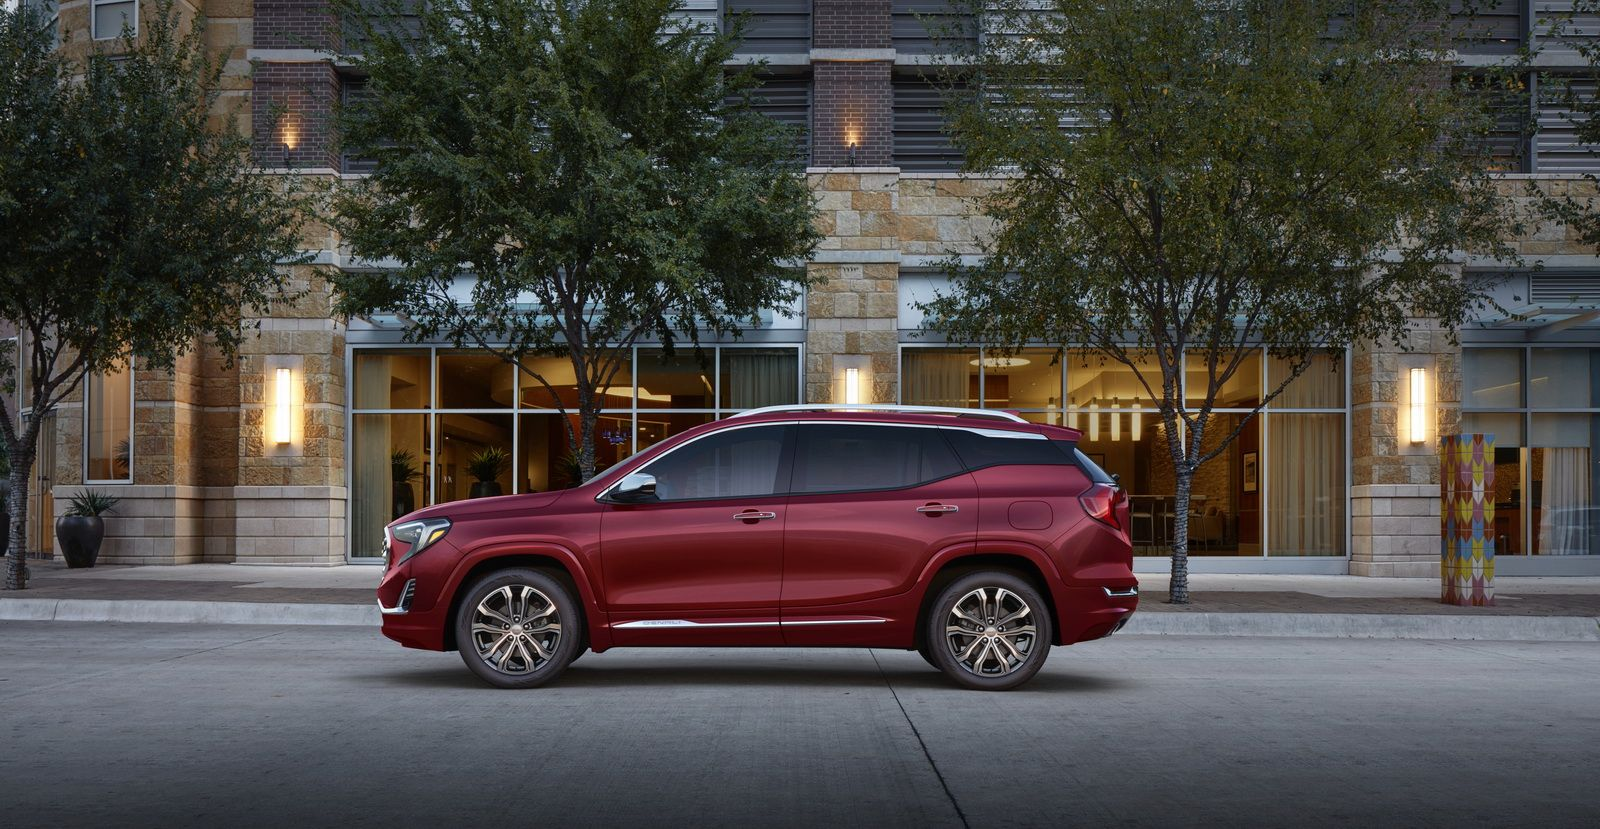 Prices For 2018 GMC Terrain Are Out The allnew 2018 GMC